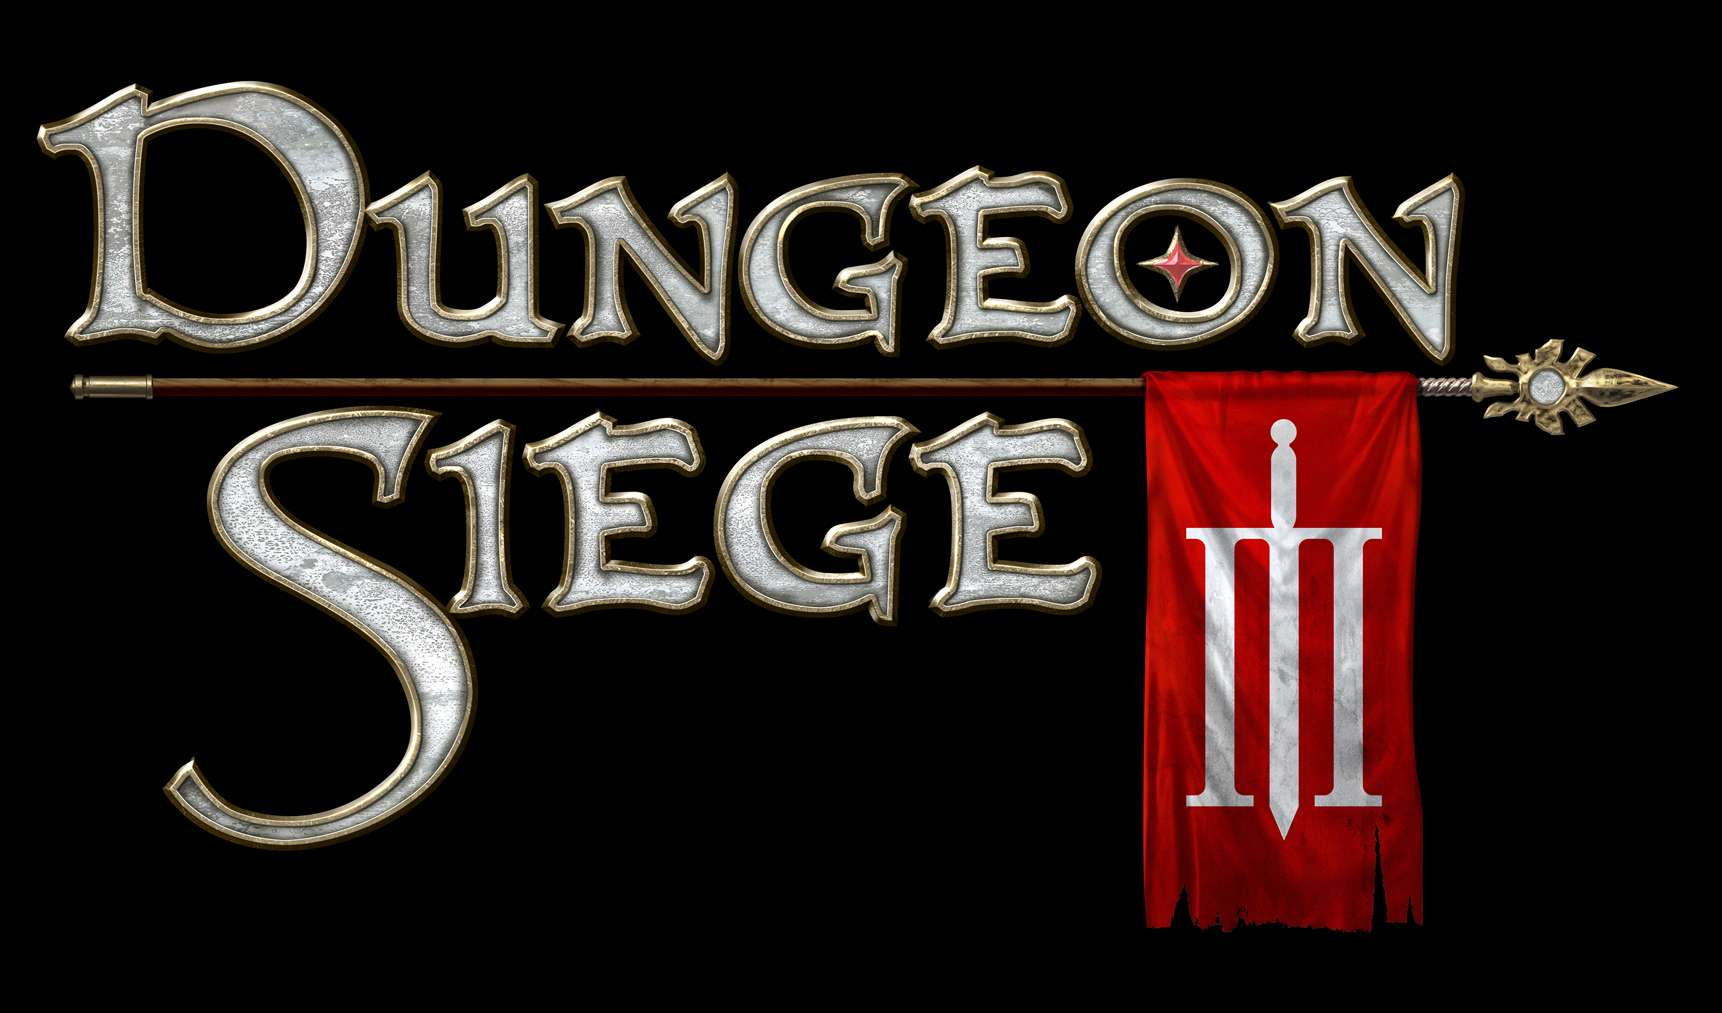 dungeon-siege-III_black